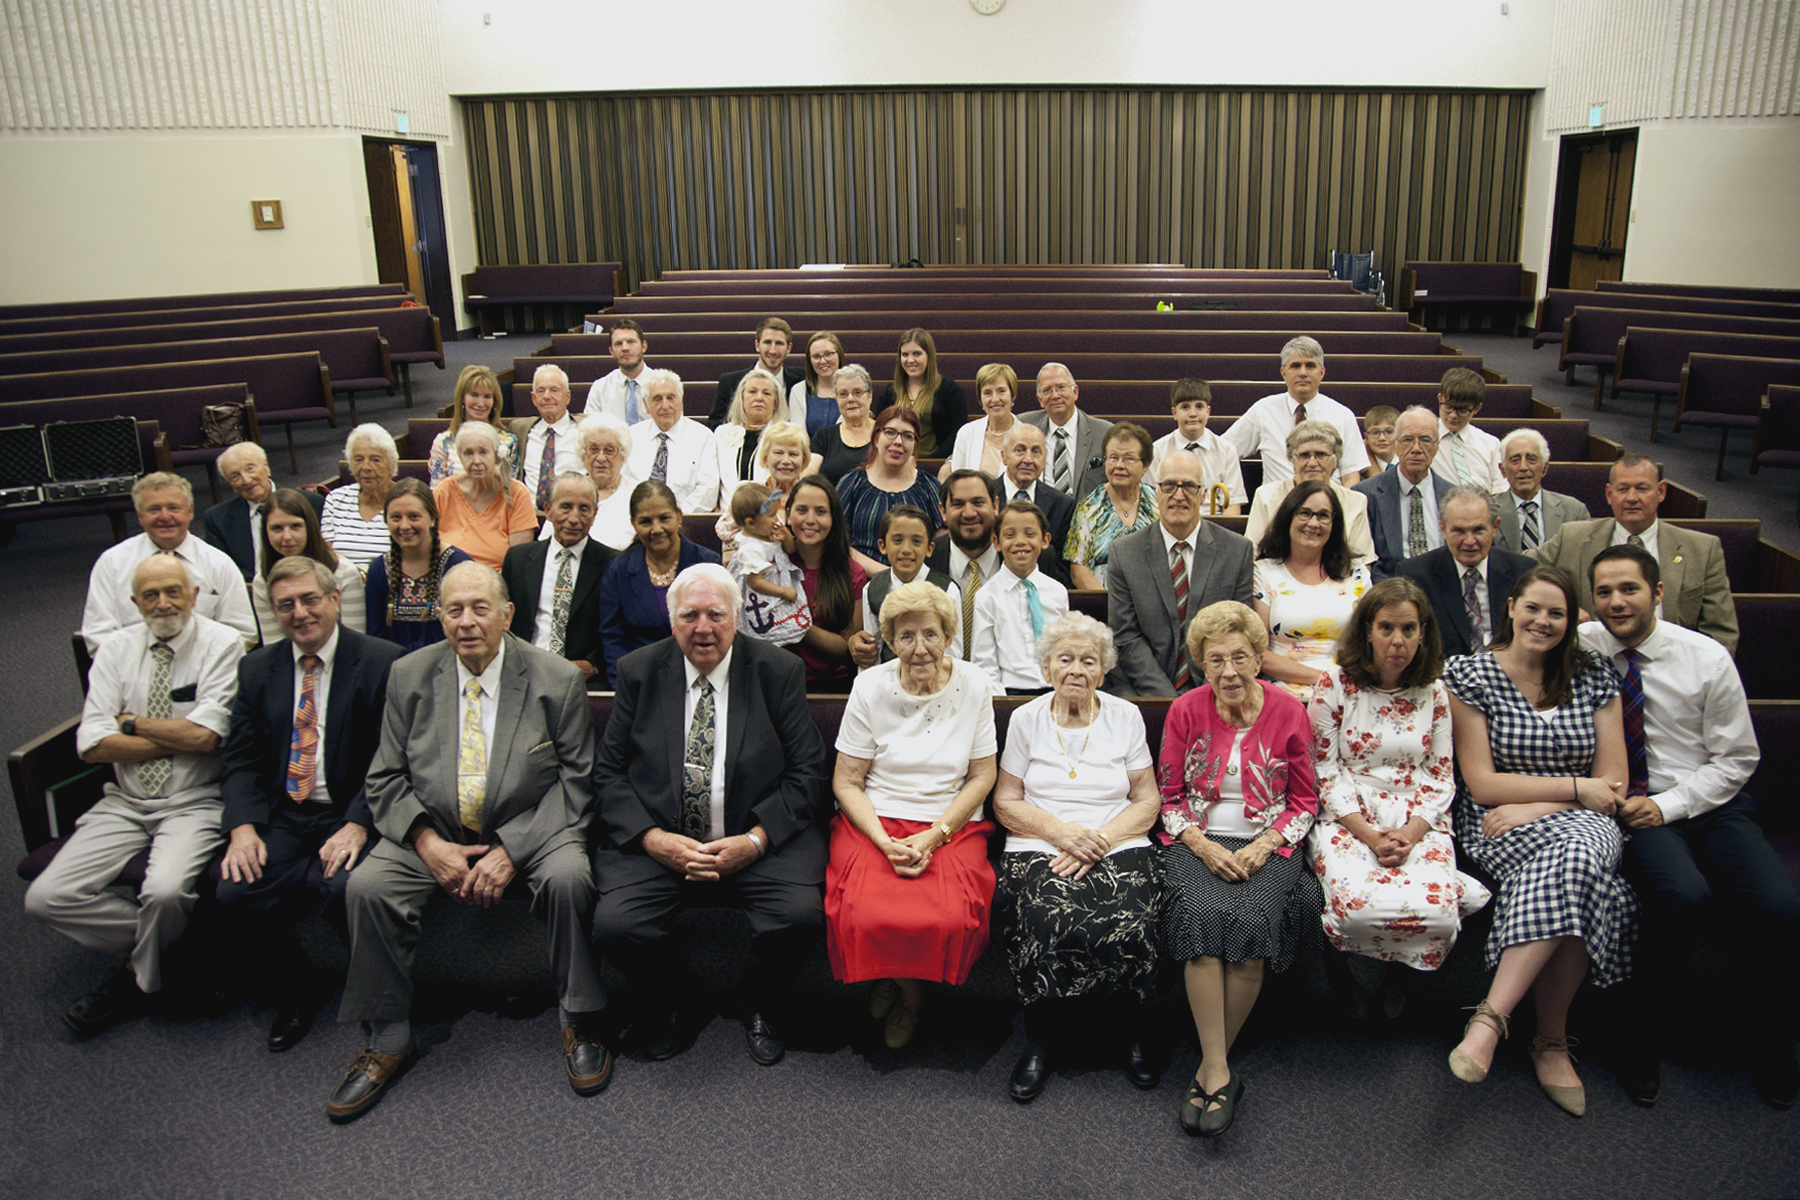 All the members of the German Speaking Ward gathered for a final group photo. The ward held its final sacrament meeting on July 14, 2019.